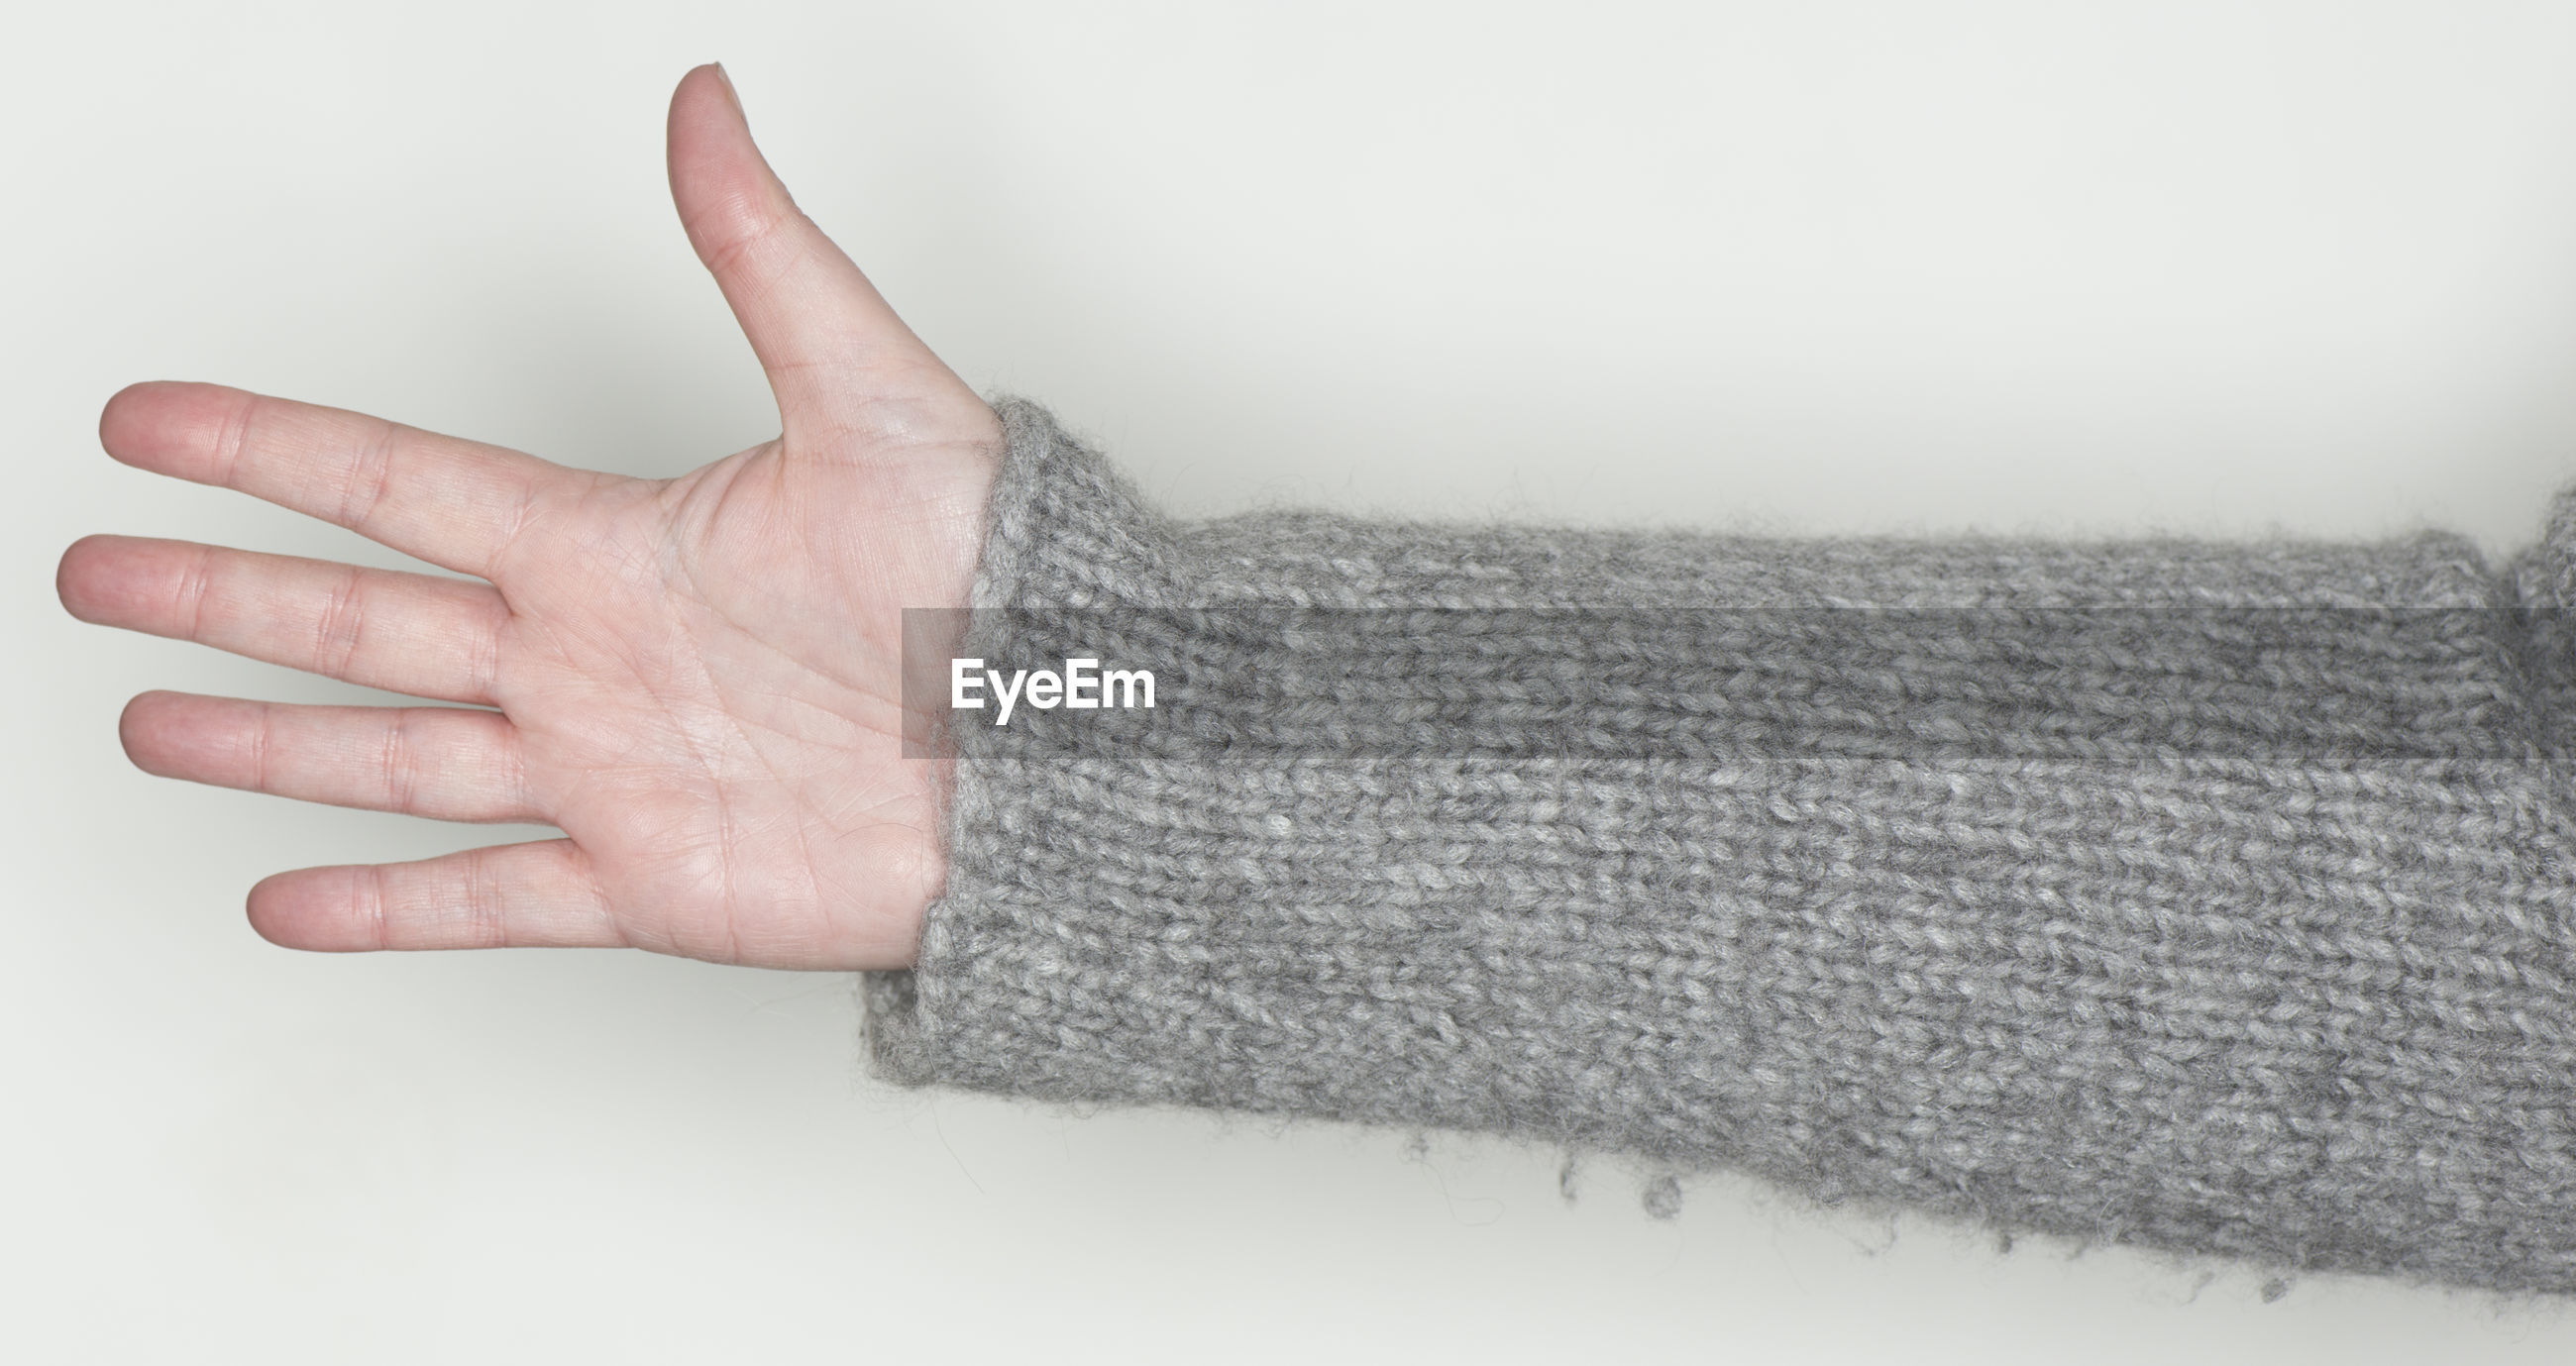 Cropped hand of woman in gray sweater gesturing against white background